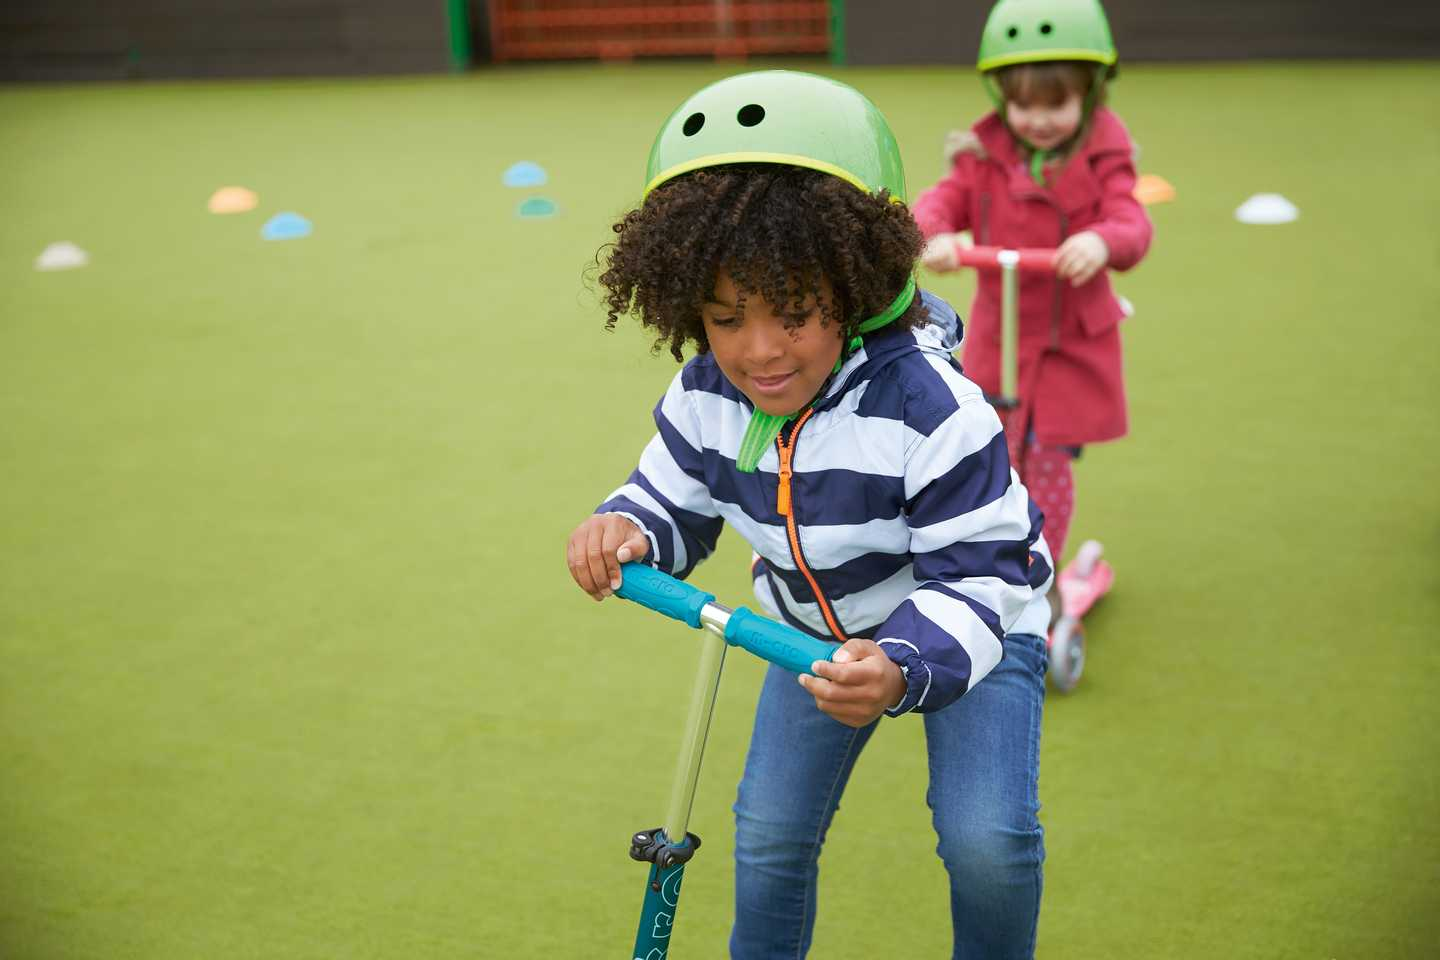 Children playing on mini scooters in the sports court